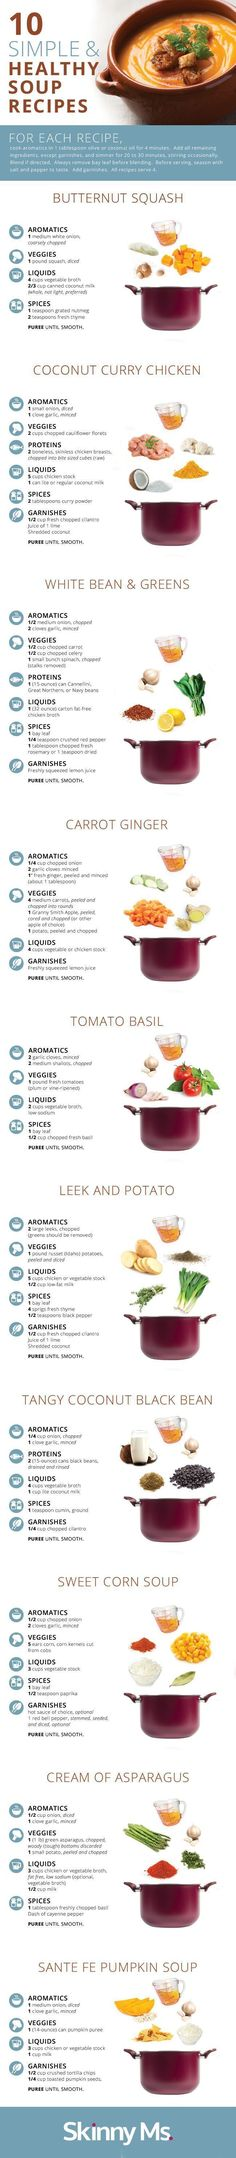 10 Simple and Healthy Soup Recipes. Souper easy!